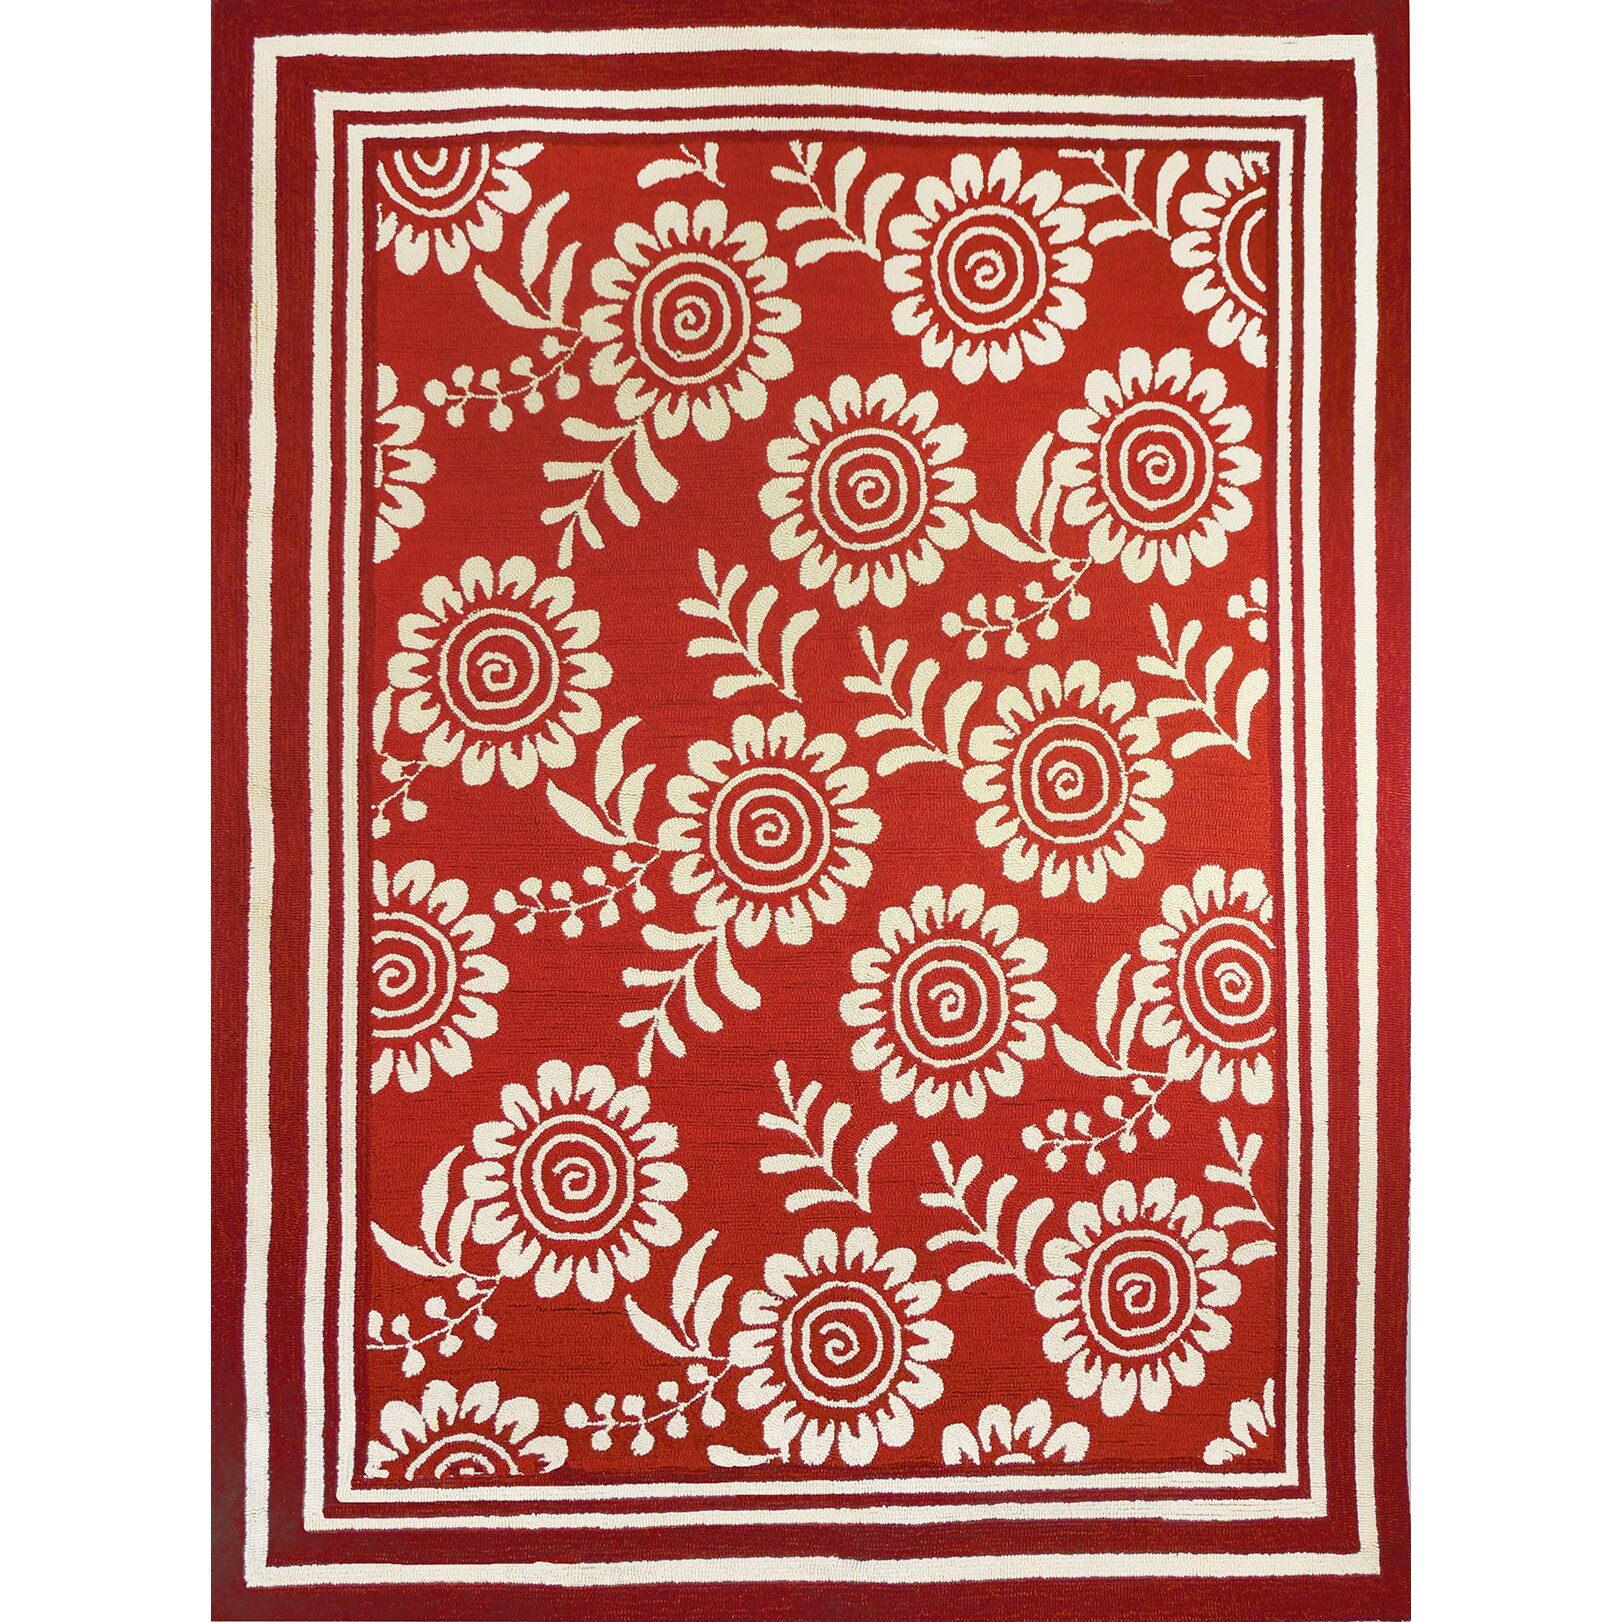 Homefires ticking floral red beige indoor outdoor area rug for Red floral area rug